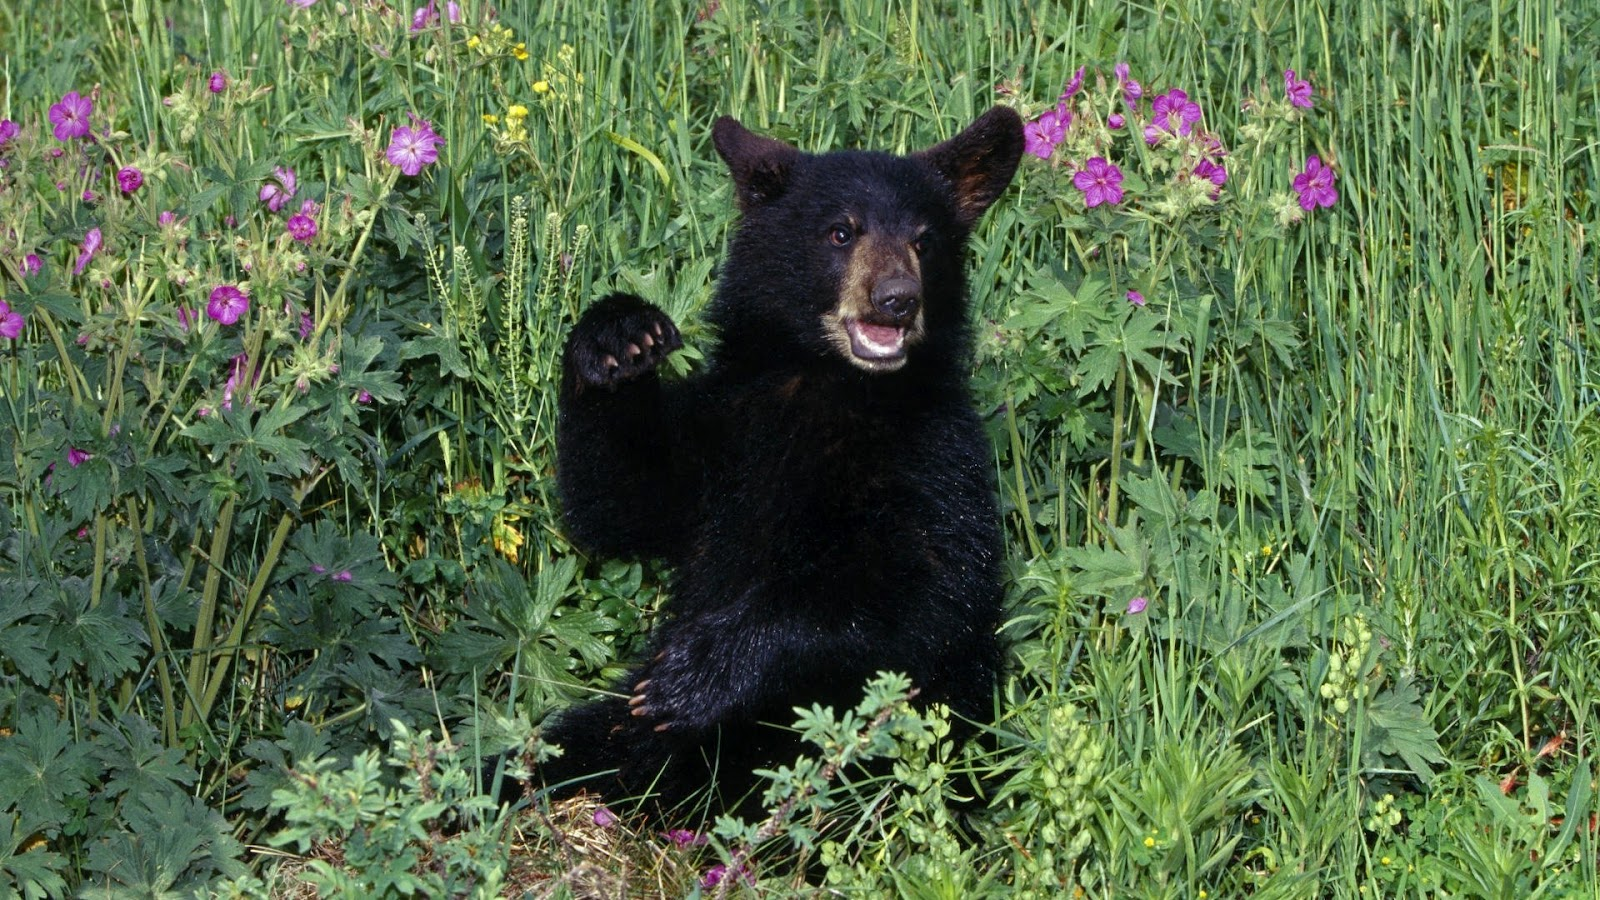 http://3.bp.blogspot.com/-r2FozmosfL8/T6QuBBXxdXI/AAAAAAAAAOs/OeBCxvyKtJc/s1600/Nature-hd-black-bear-cub-in-wildflowers-wallpapers-background_1920x1080.jpg